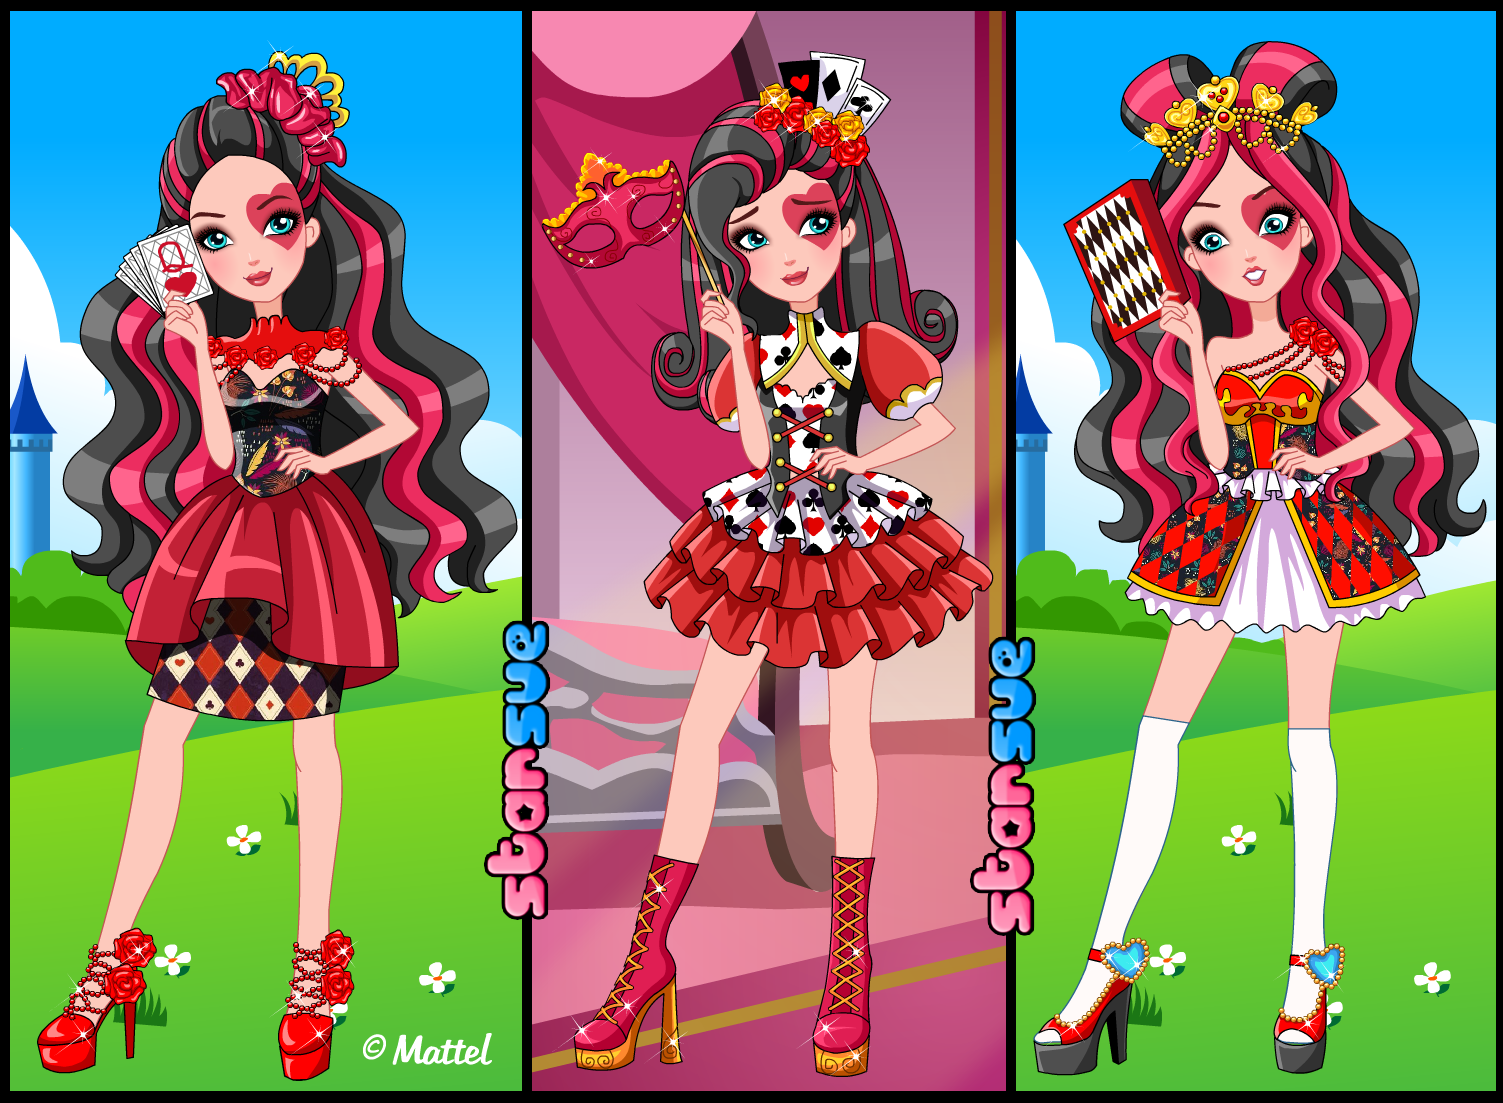 Dress up five nights at freedys - Ever After High Spring Unsprung Lizzie Hearts Dress Up Game Http Www